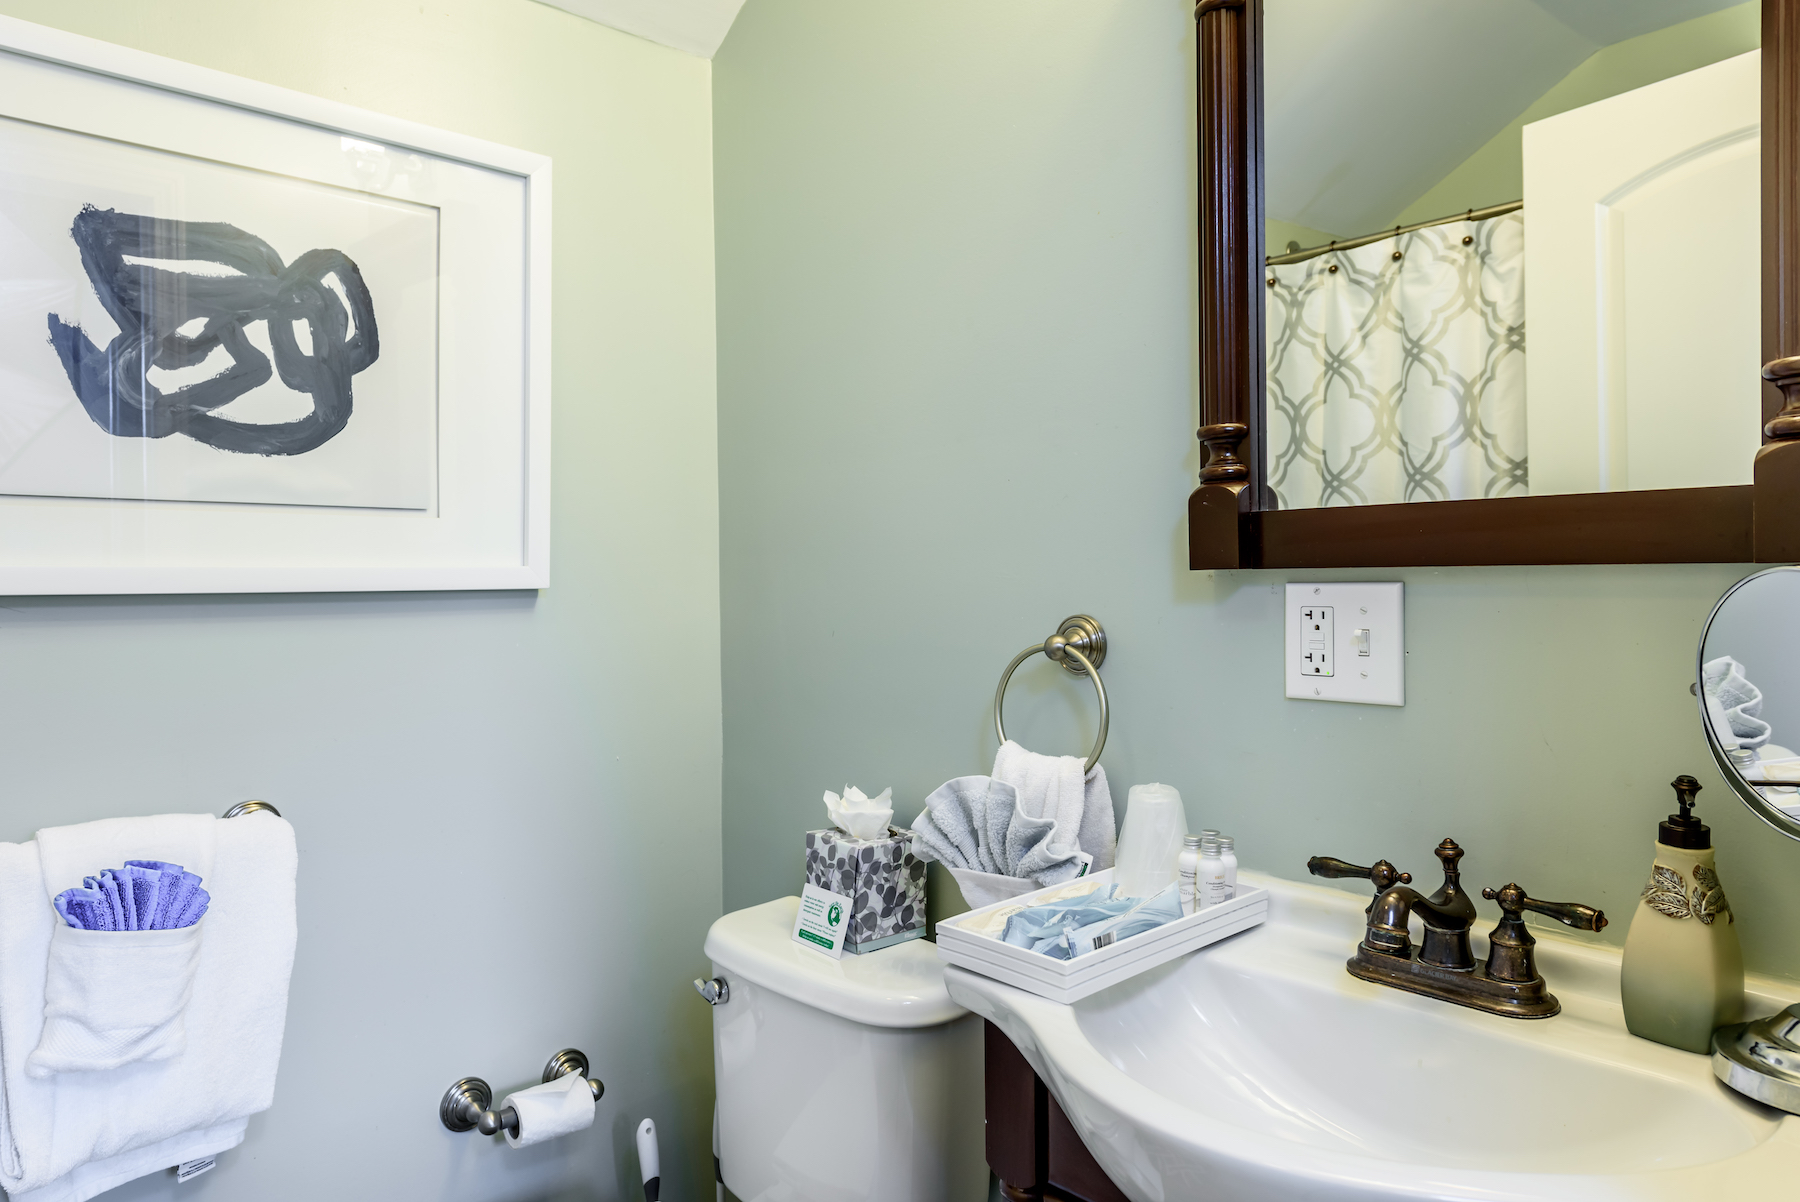 Inn-Room-16-and-Bathrooms-20180419-078-Copy-1